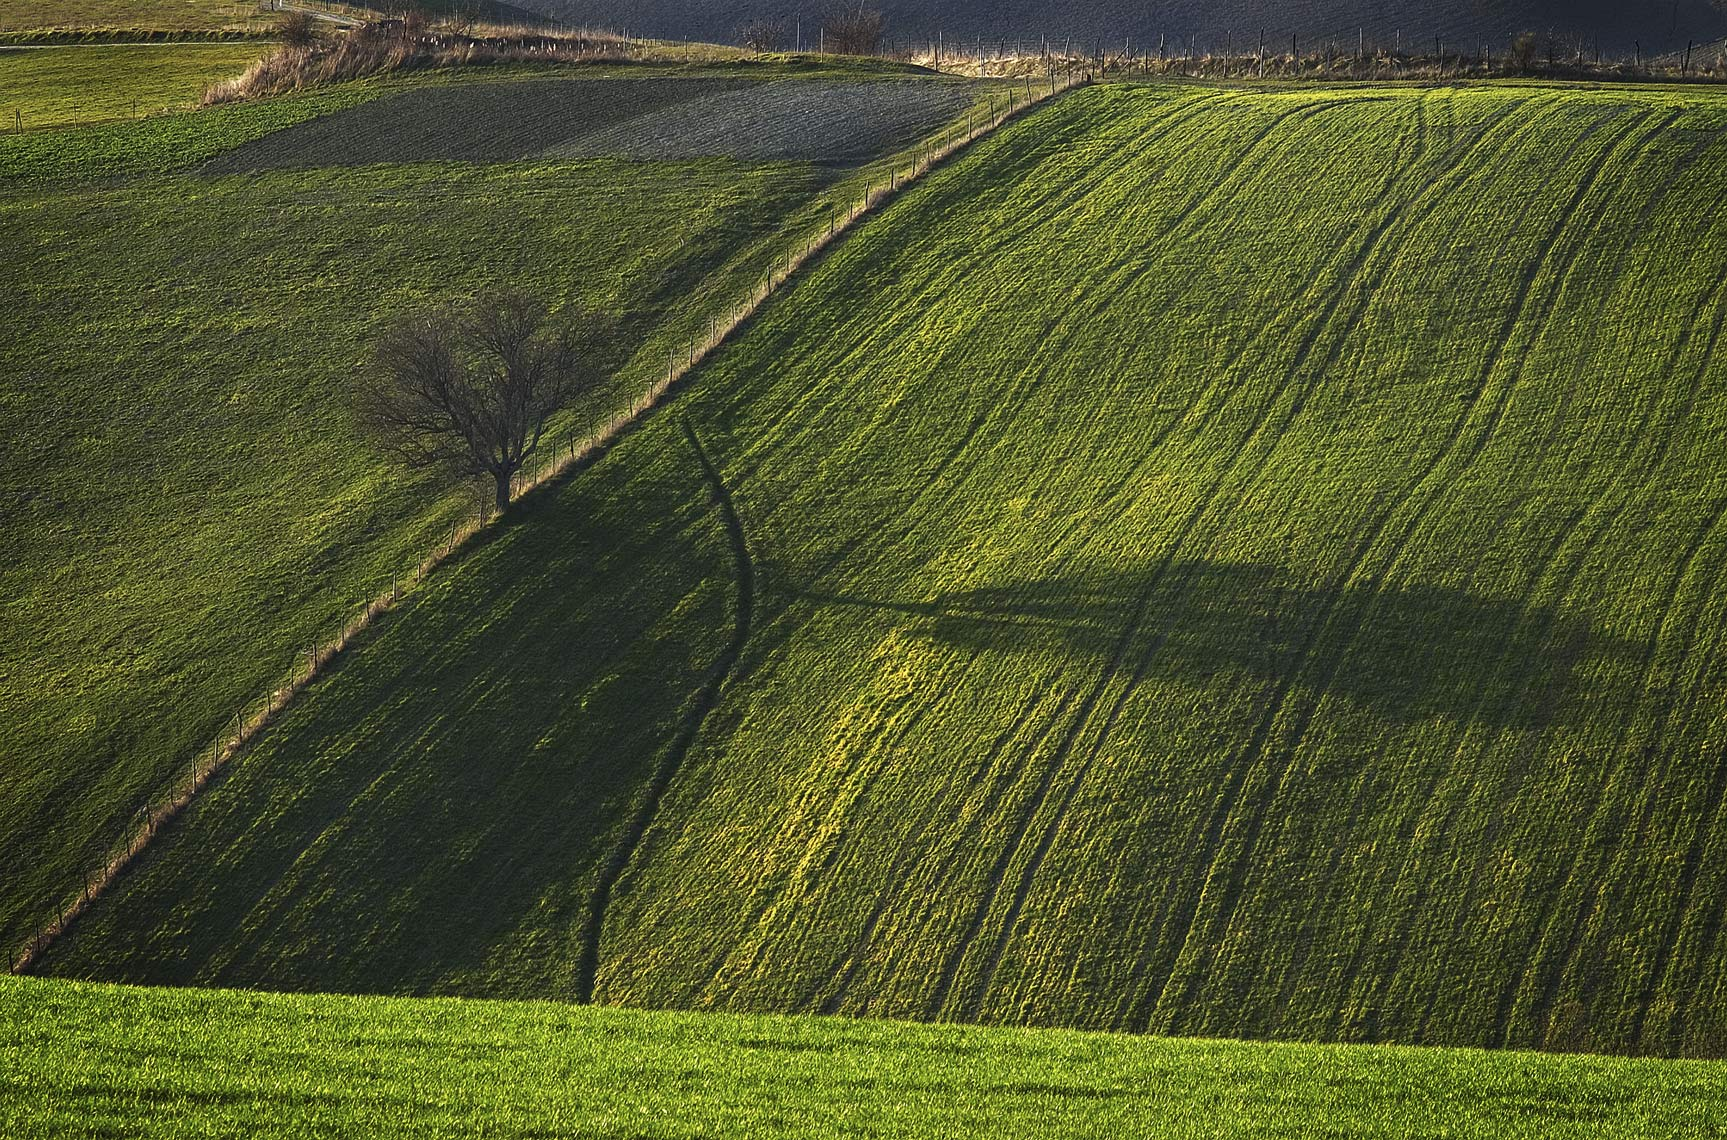 ONE TREE SHADOW ITALIA